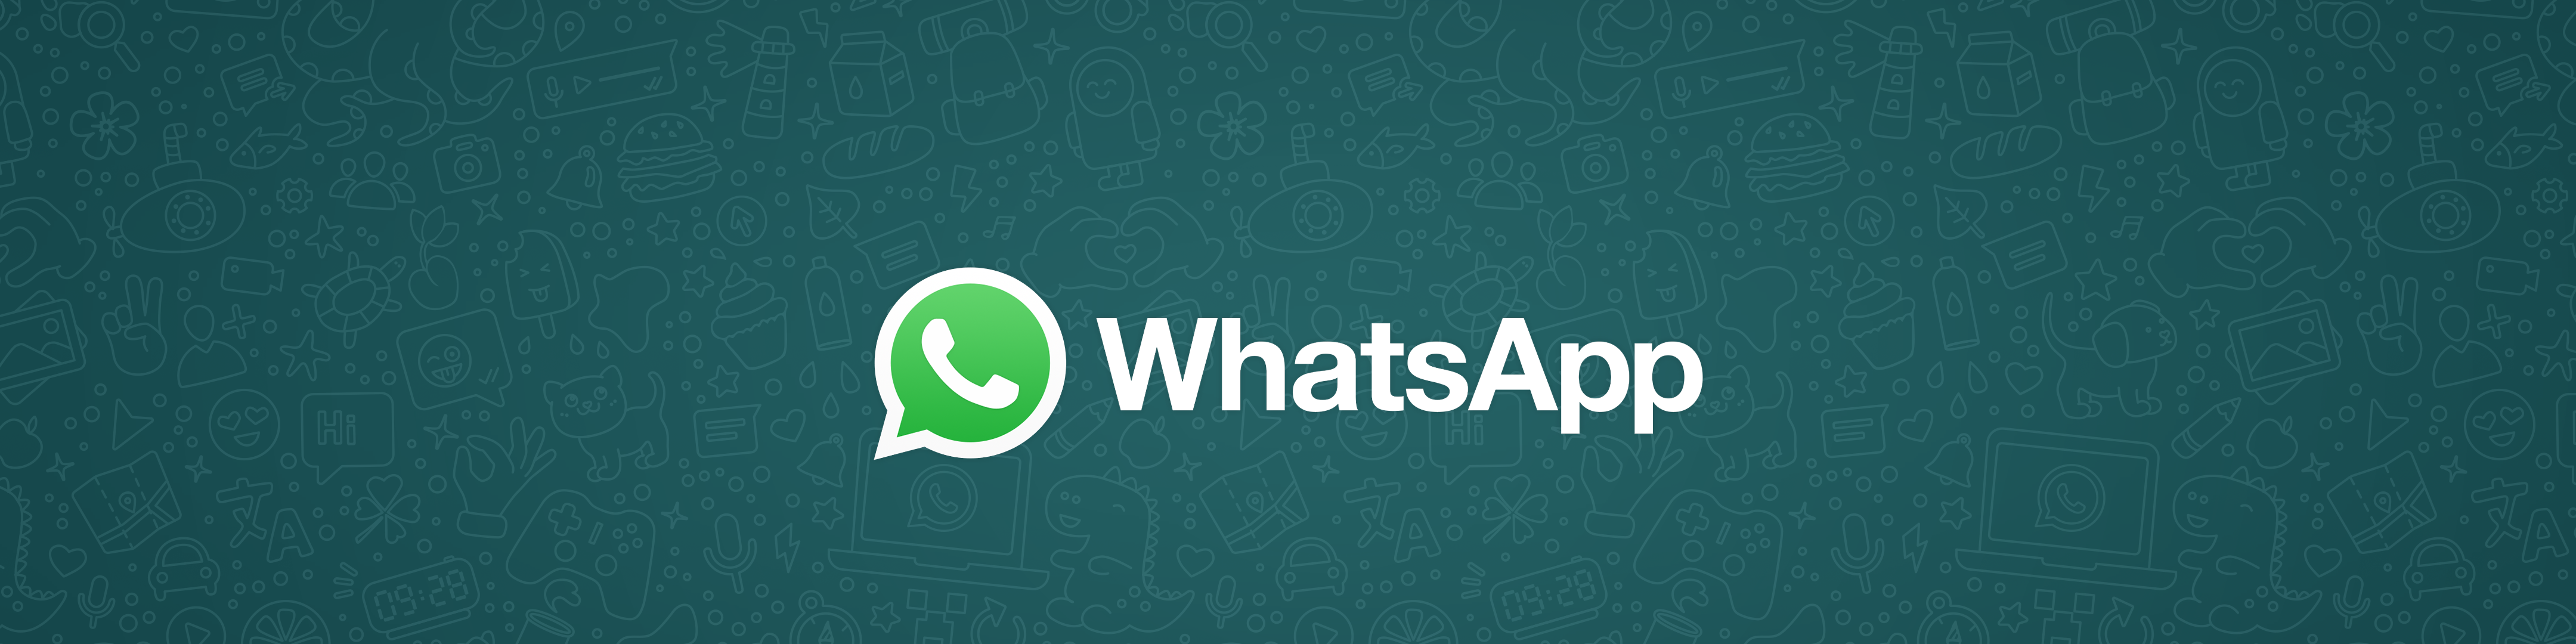 WhatsApp: A New, Convenient Way for Your Customers to Contact You